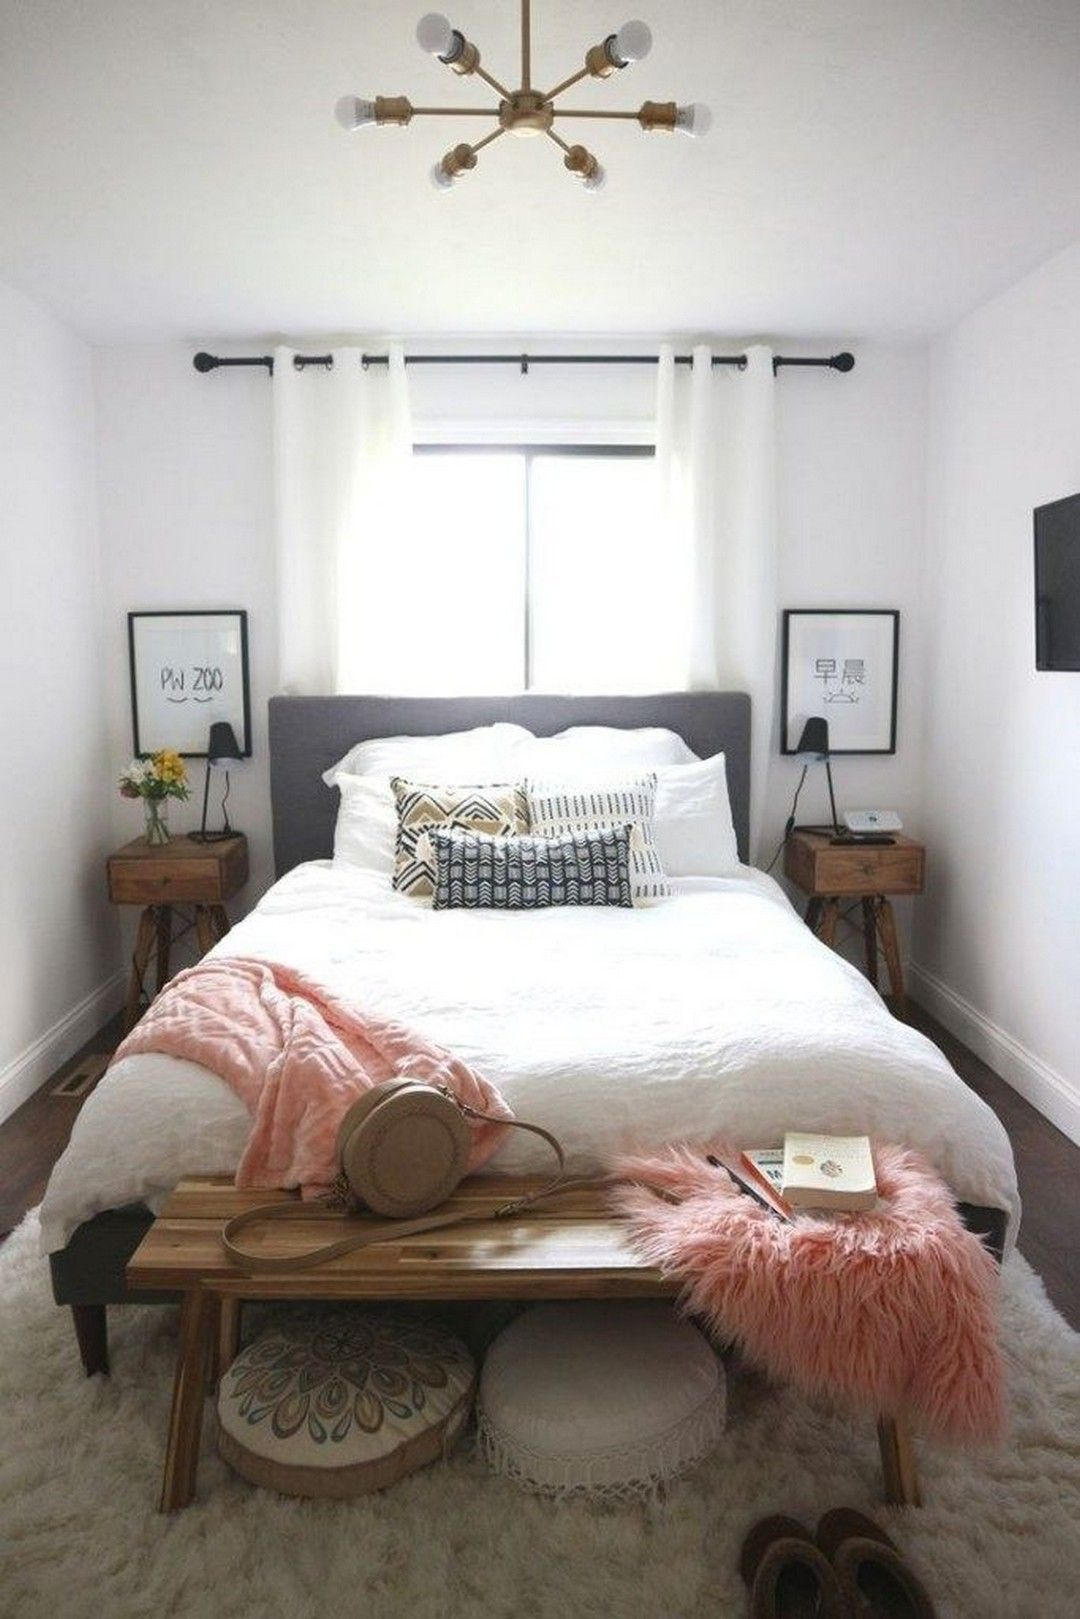 Pin By Kyle On Home Decor Small Guest Bedroom Small Apartment